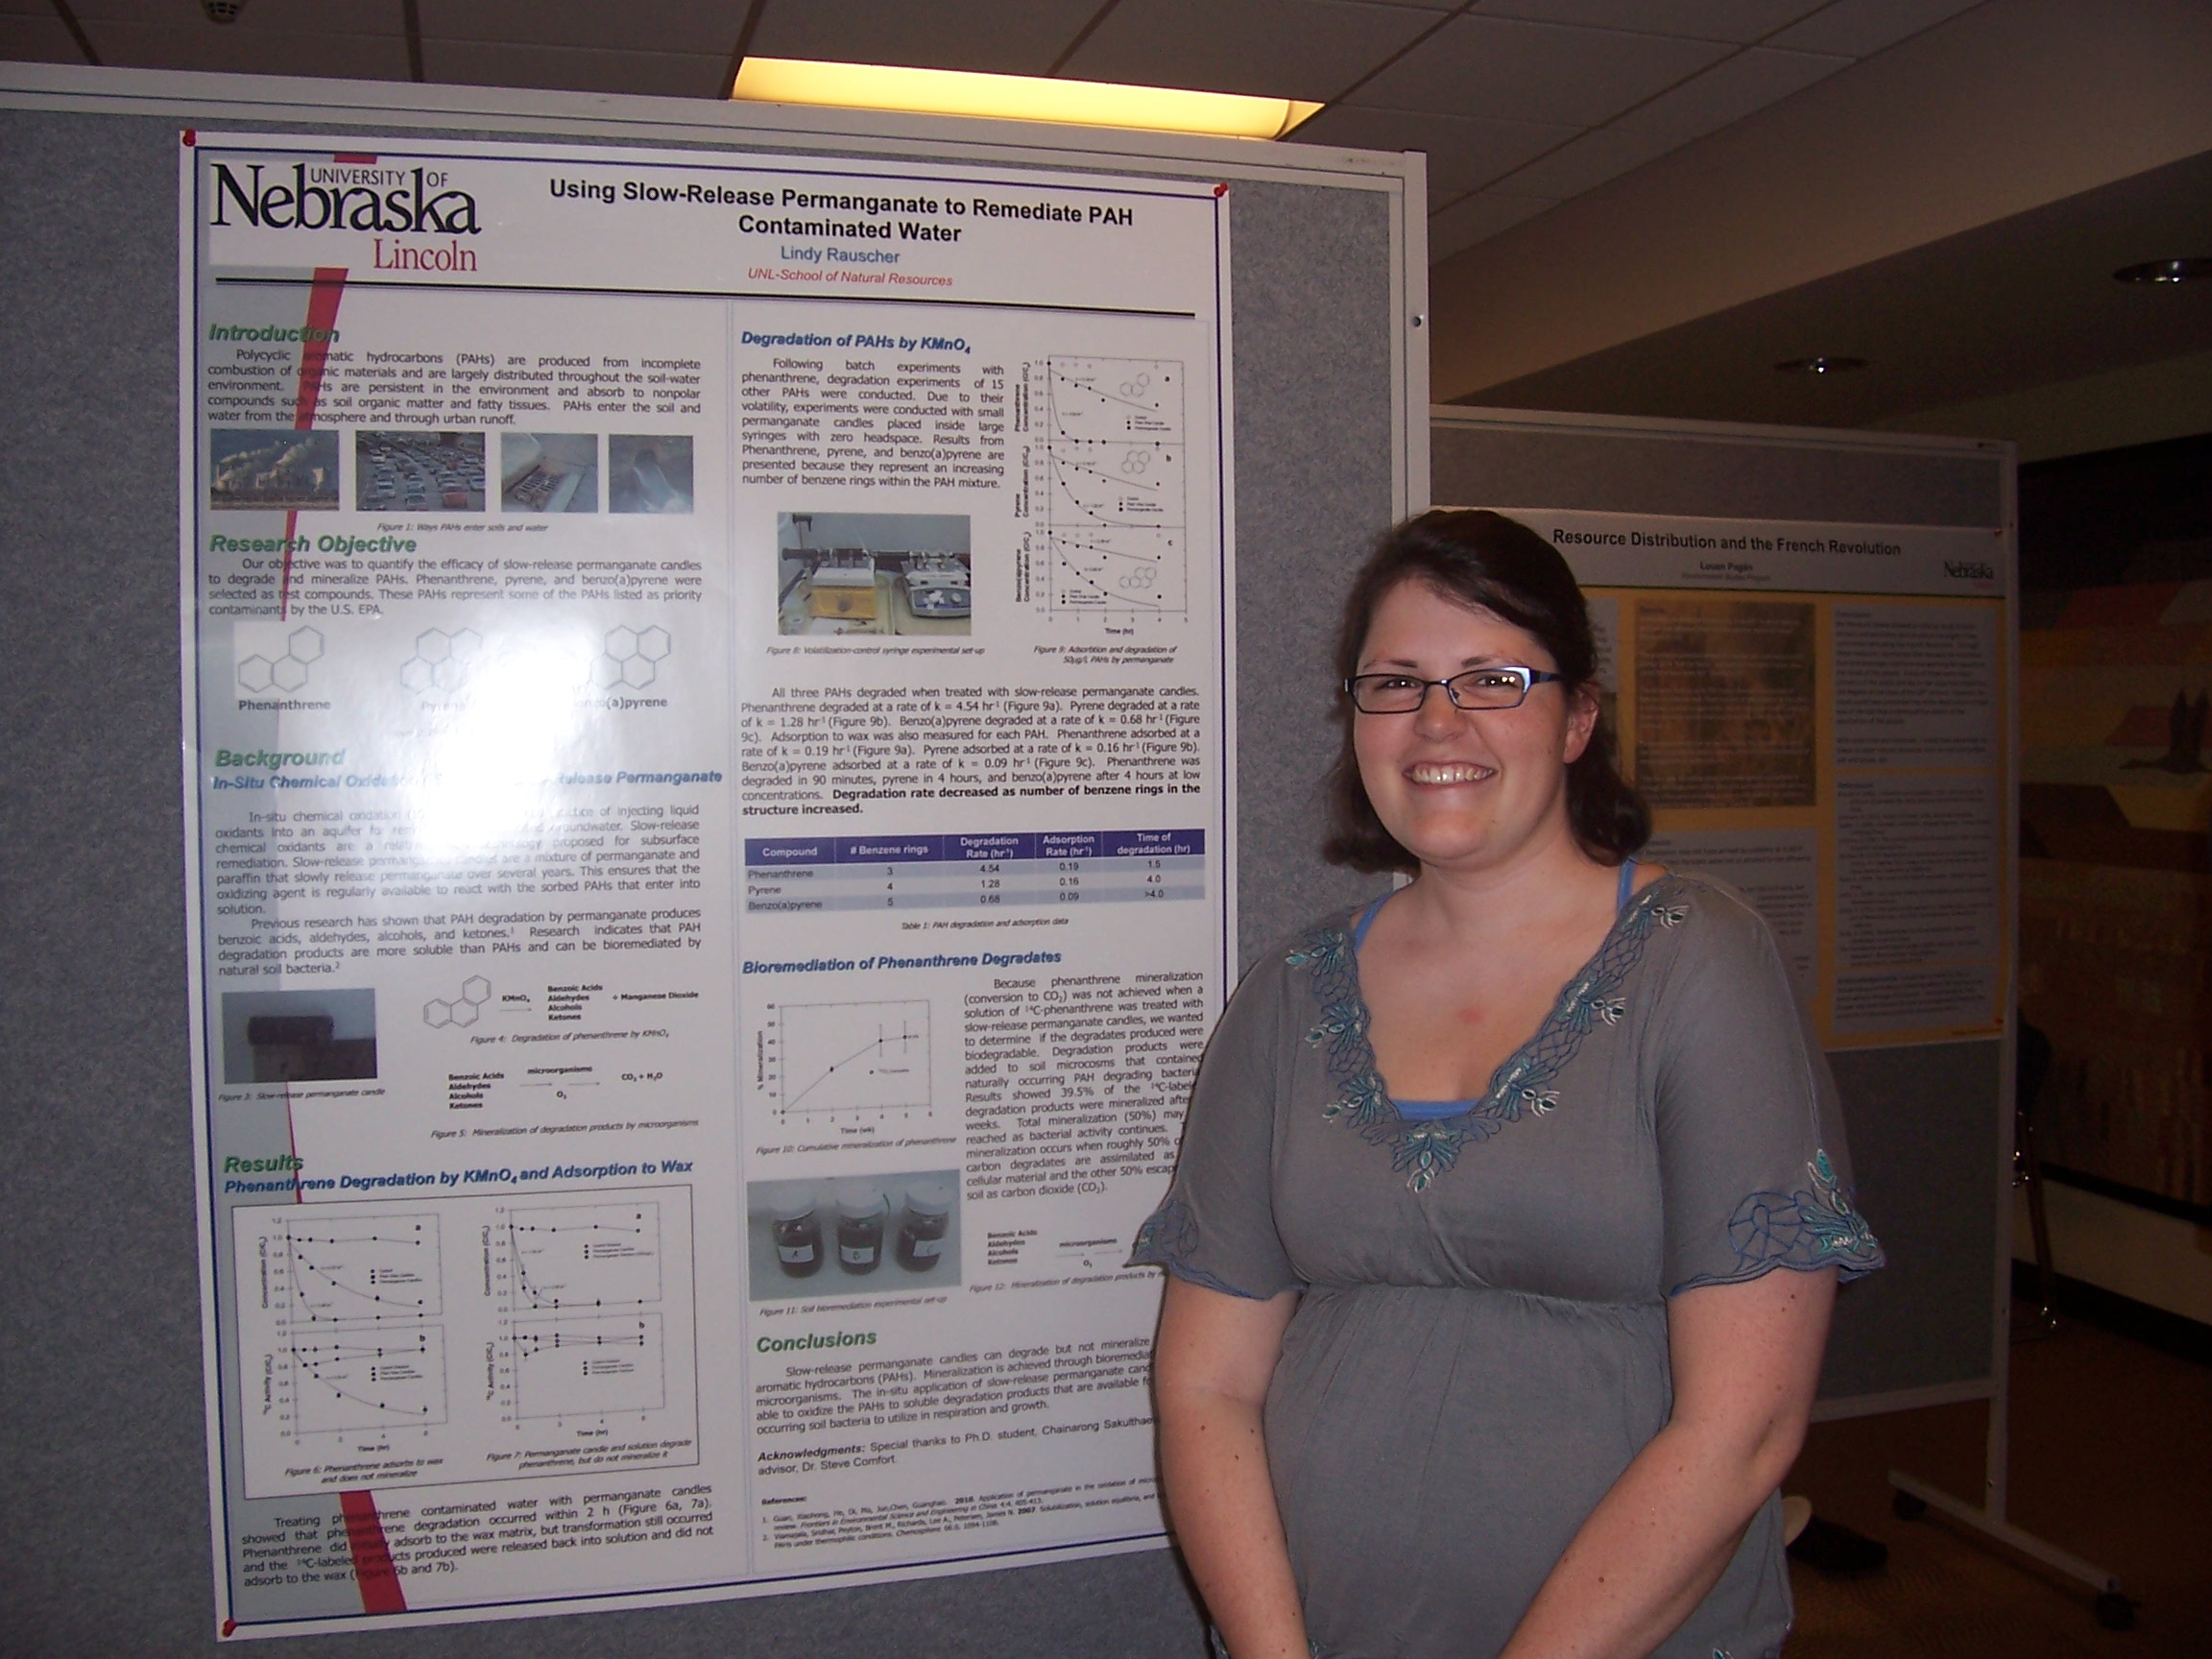 Lindy Rauscher poses with her winning poster on using permanganate to help get rid of hazardous chemicals in the environment.